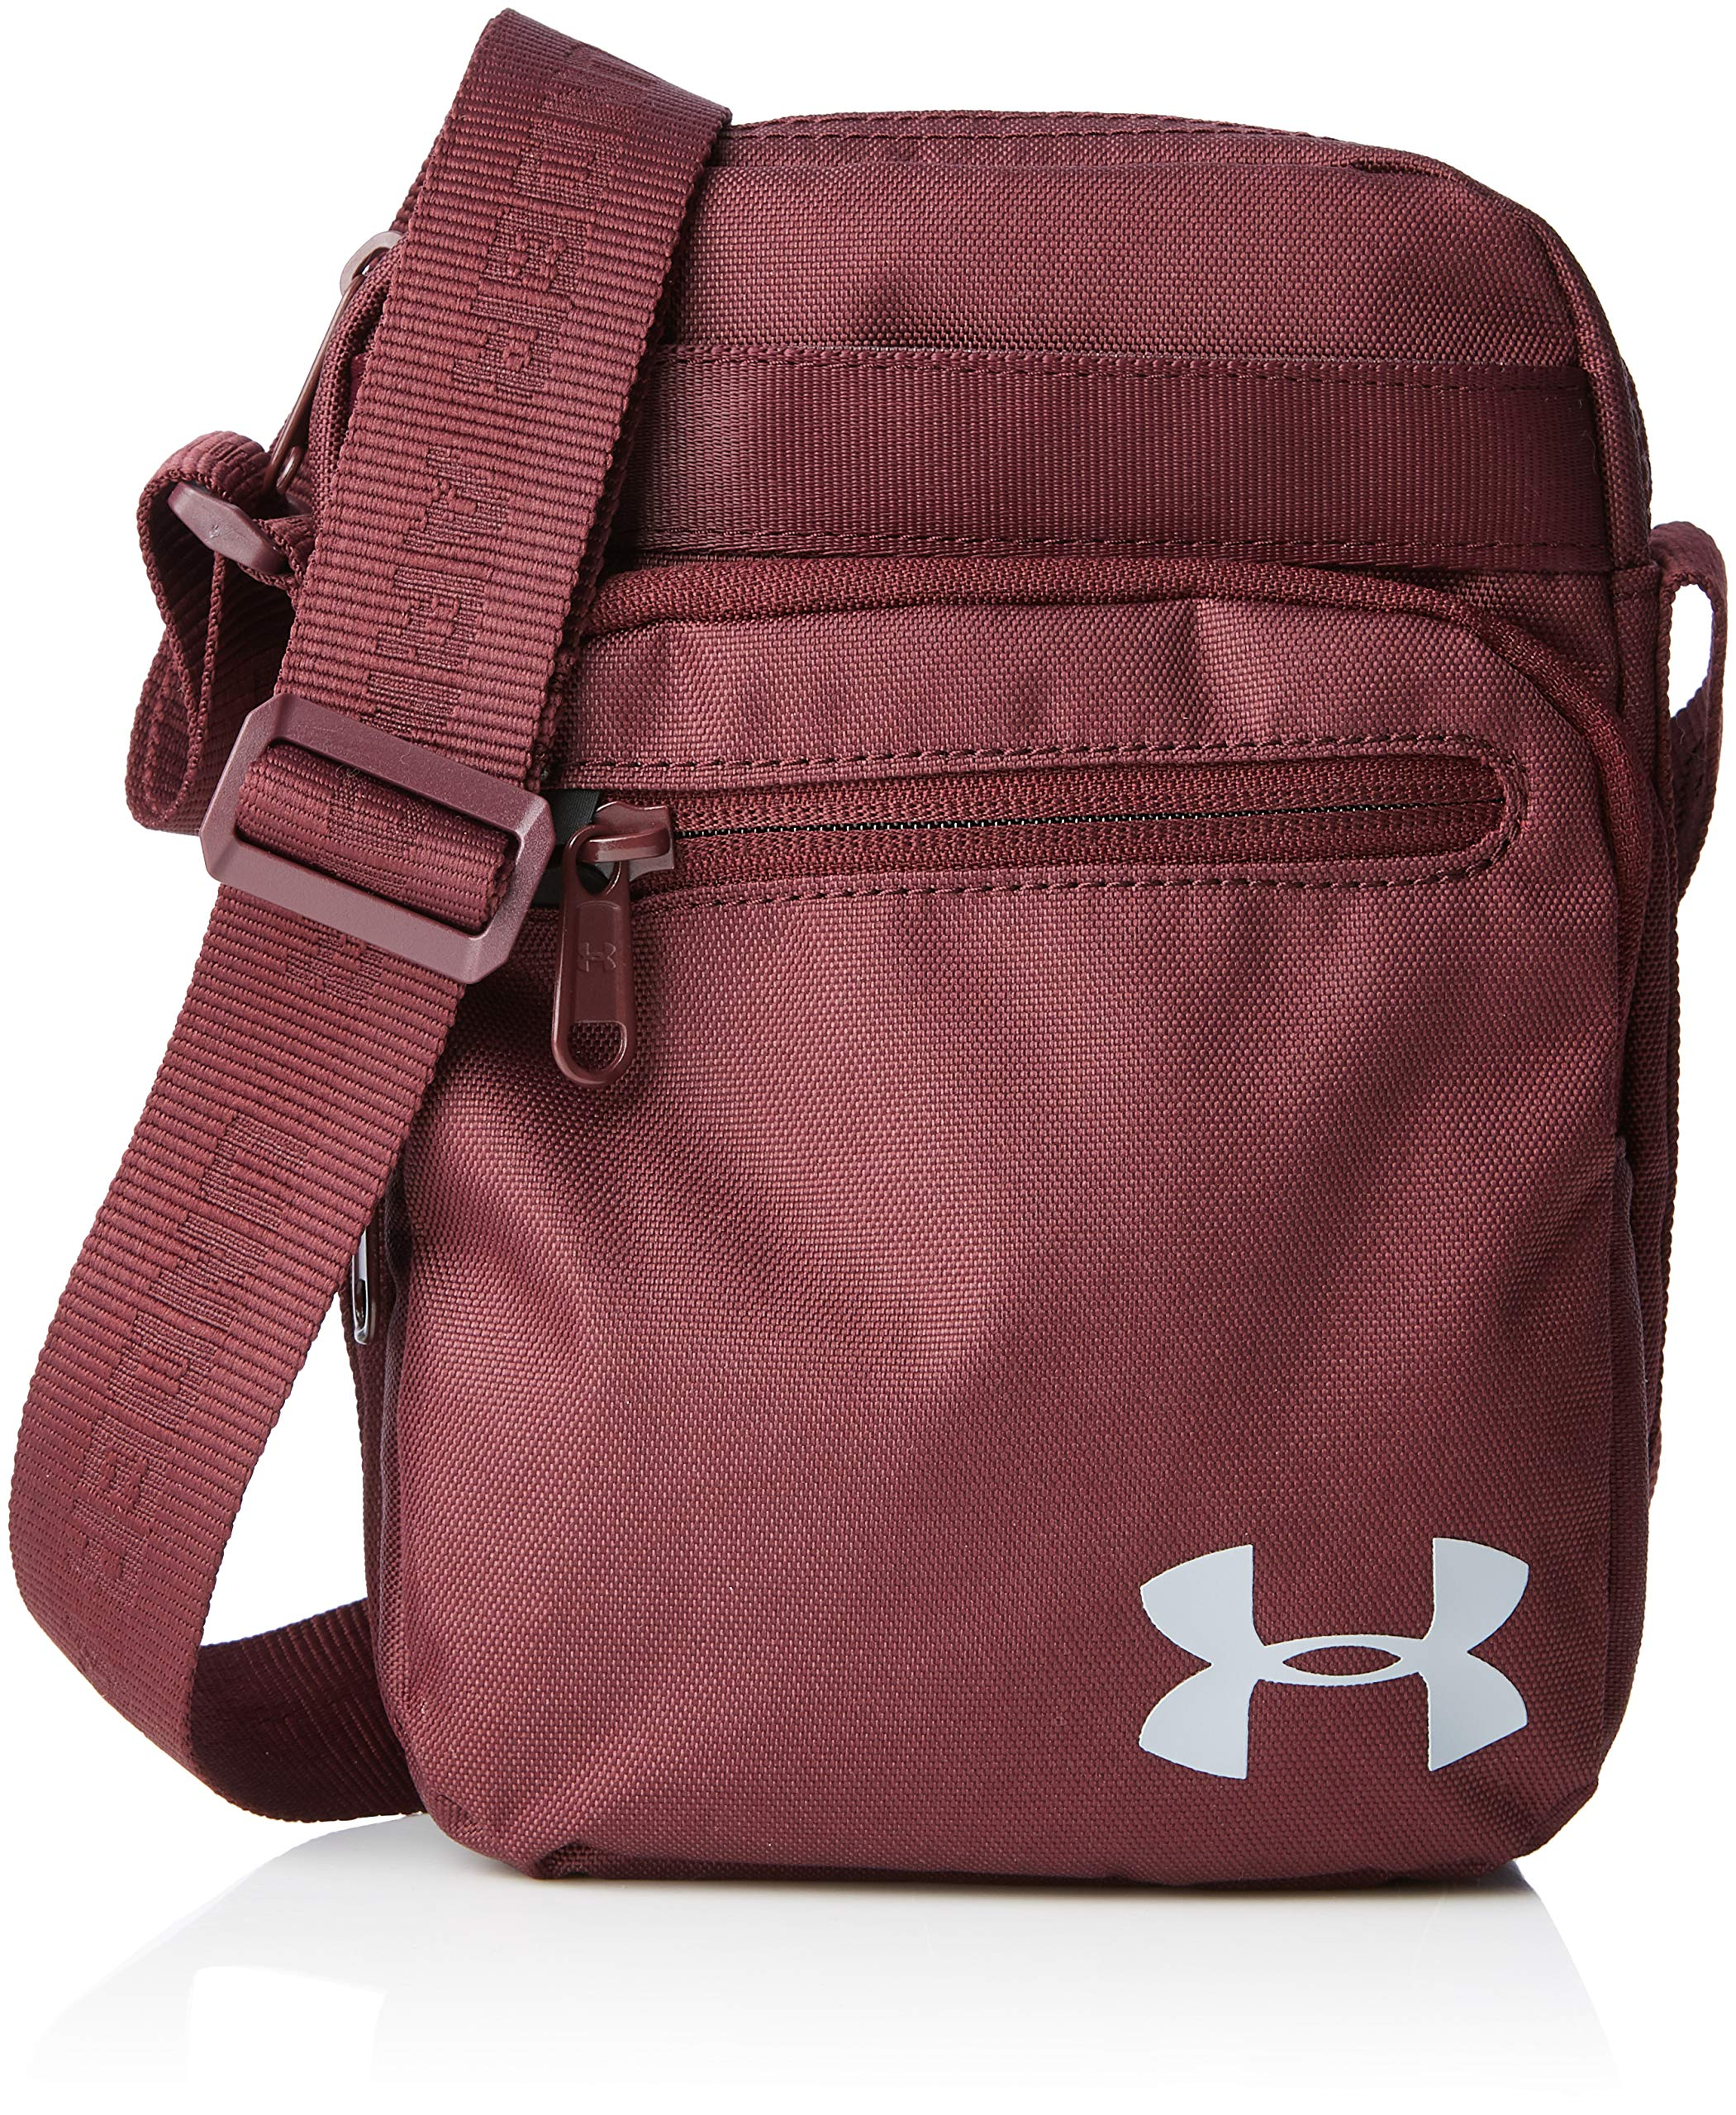 Under Armour Unisex's Crossbody Duffel, Dark Maroon/Steel, One Size